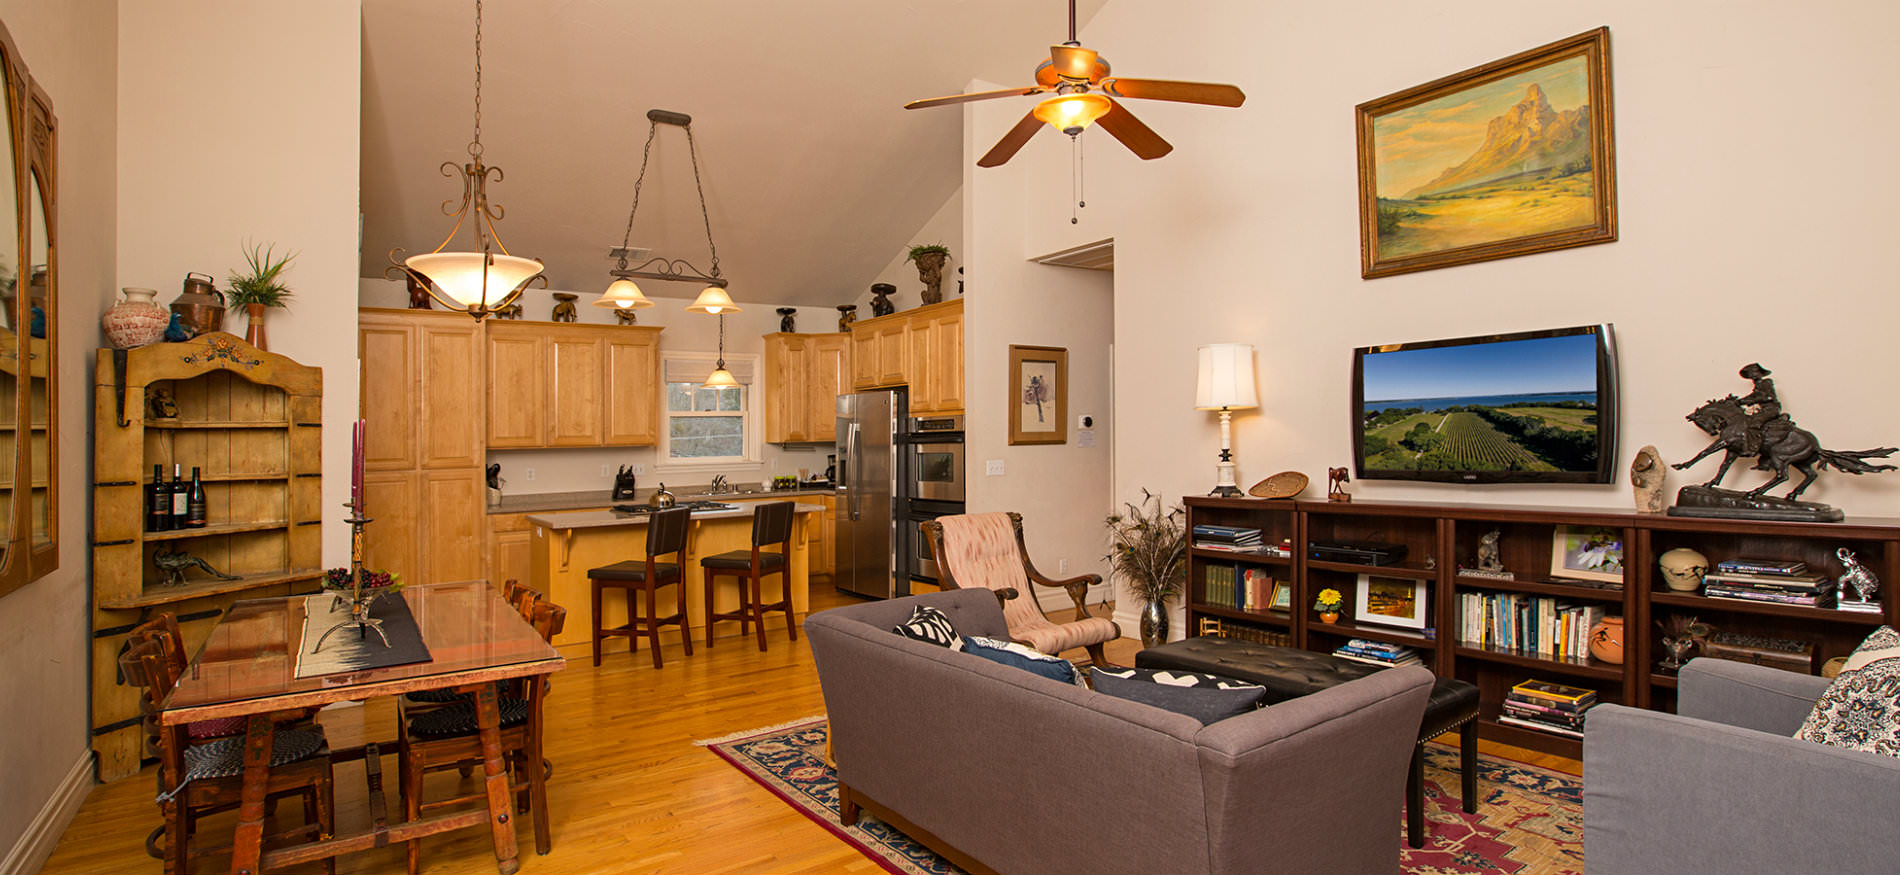 Vaulted room with light hardwood floors, sitting area with bookshelves and TV, dining table and kitchen with island seating